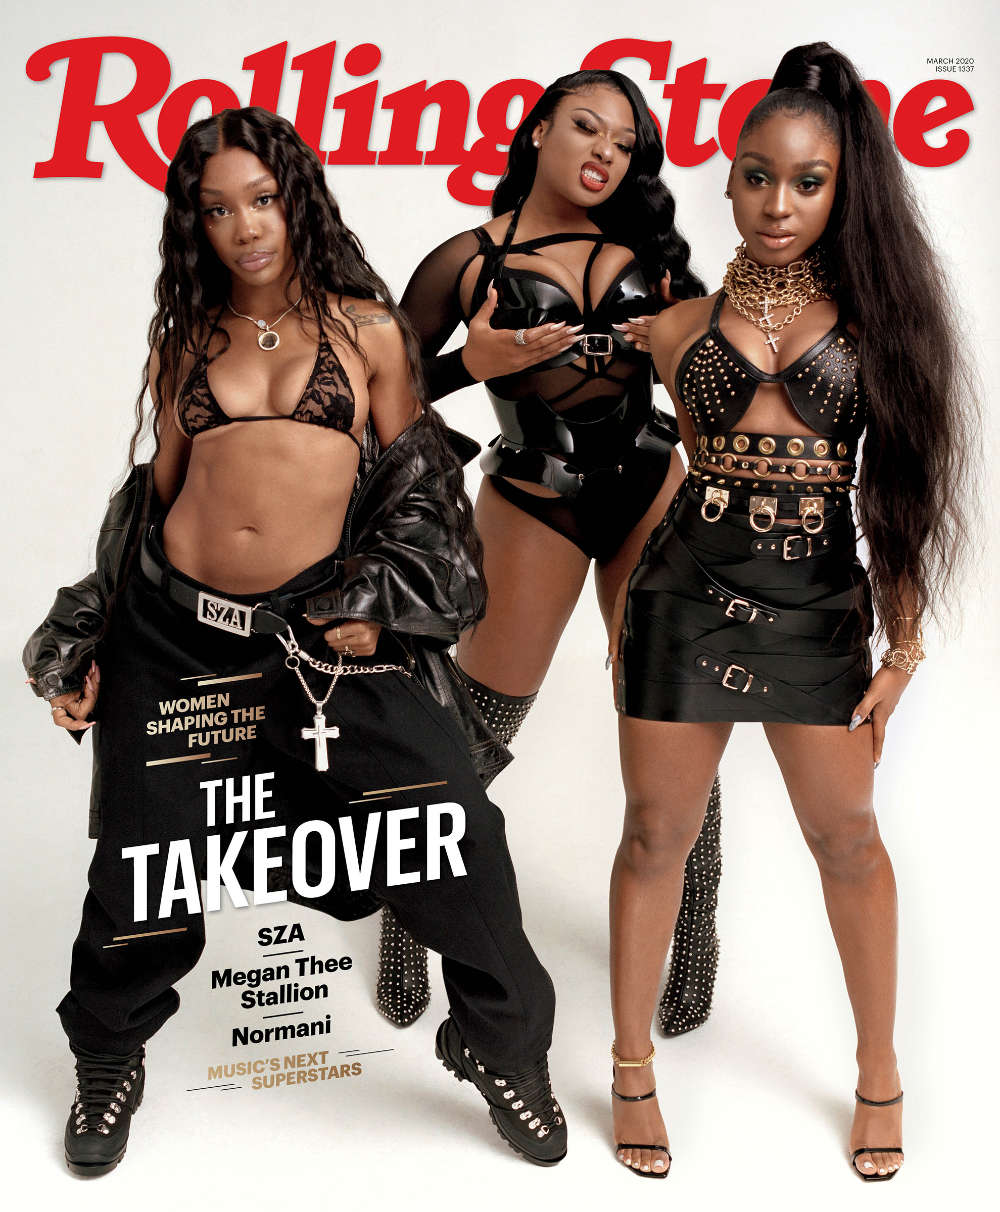 Sza Megan Thee Stallion And Normani Star On The Cover Of Rolling Stones Second Annual Women Shaping The Future Is In 2020 Black Girl Aesthetic Black Magazine Fashion